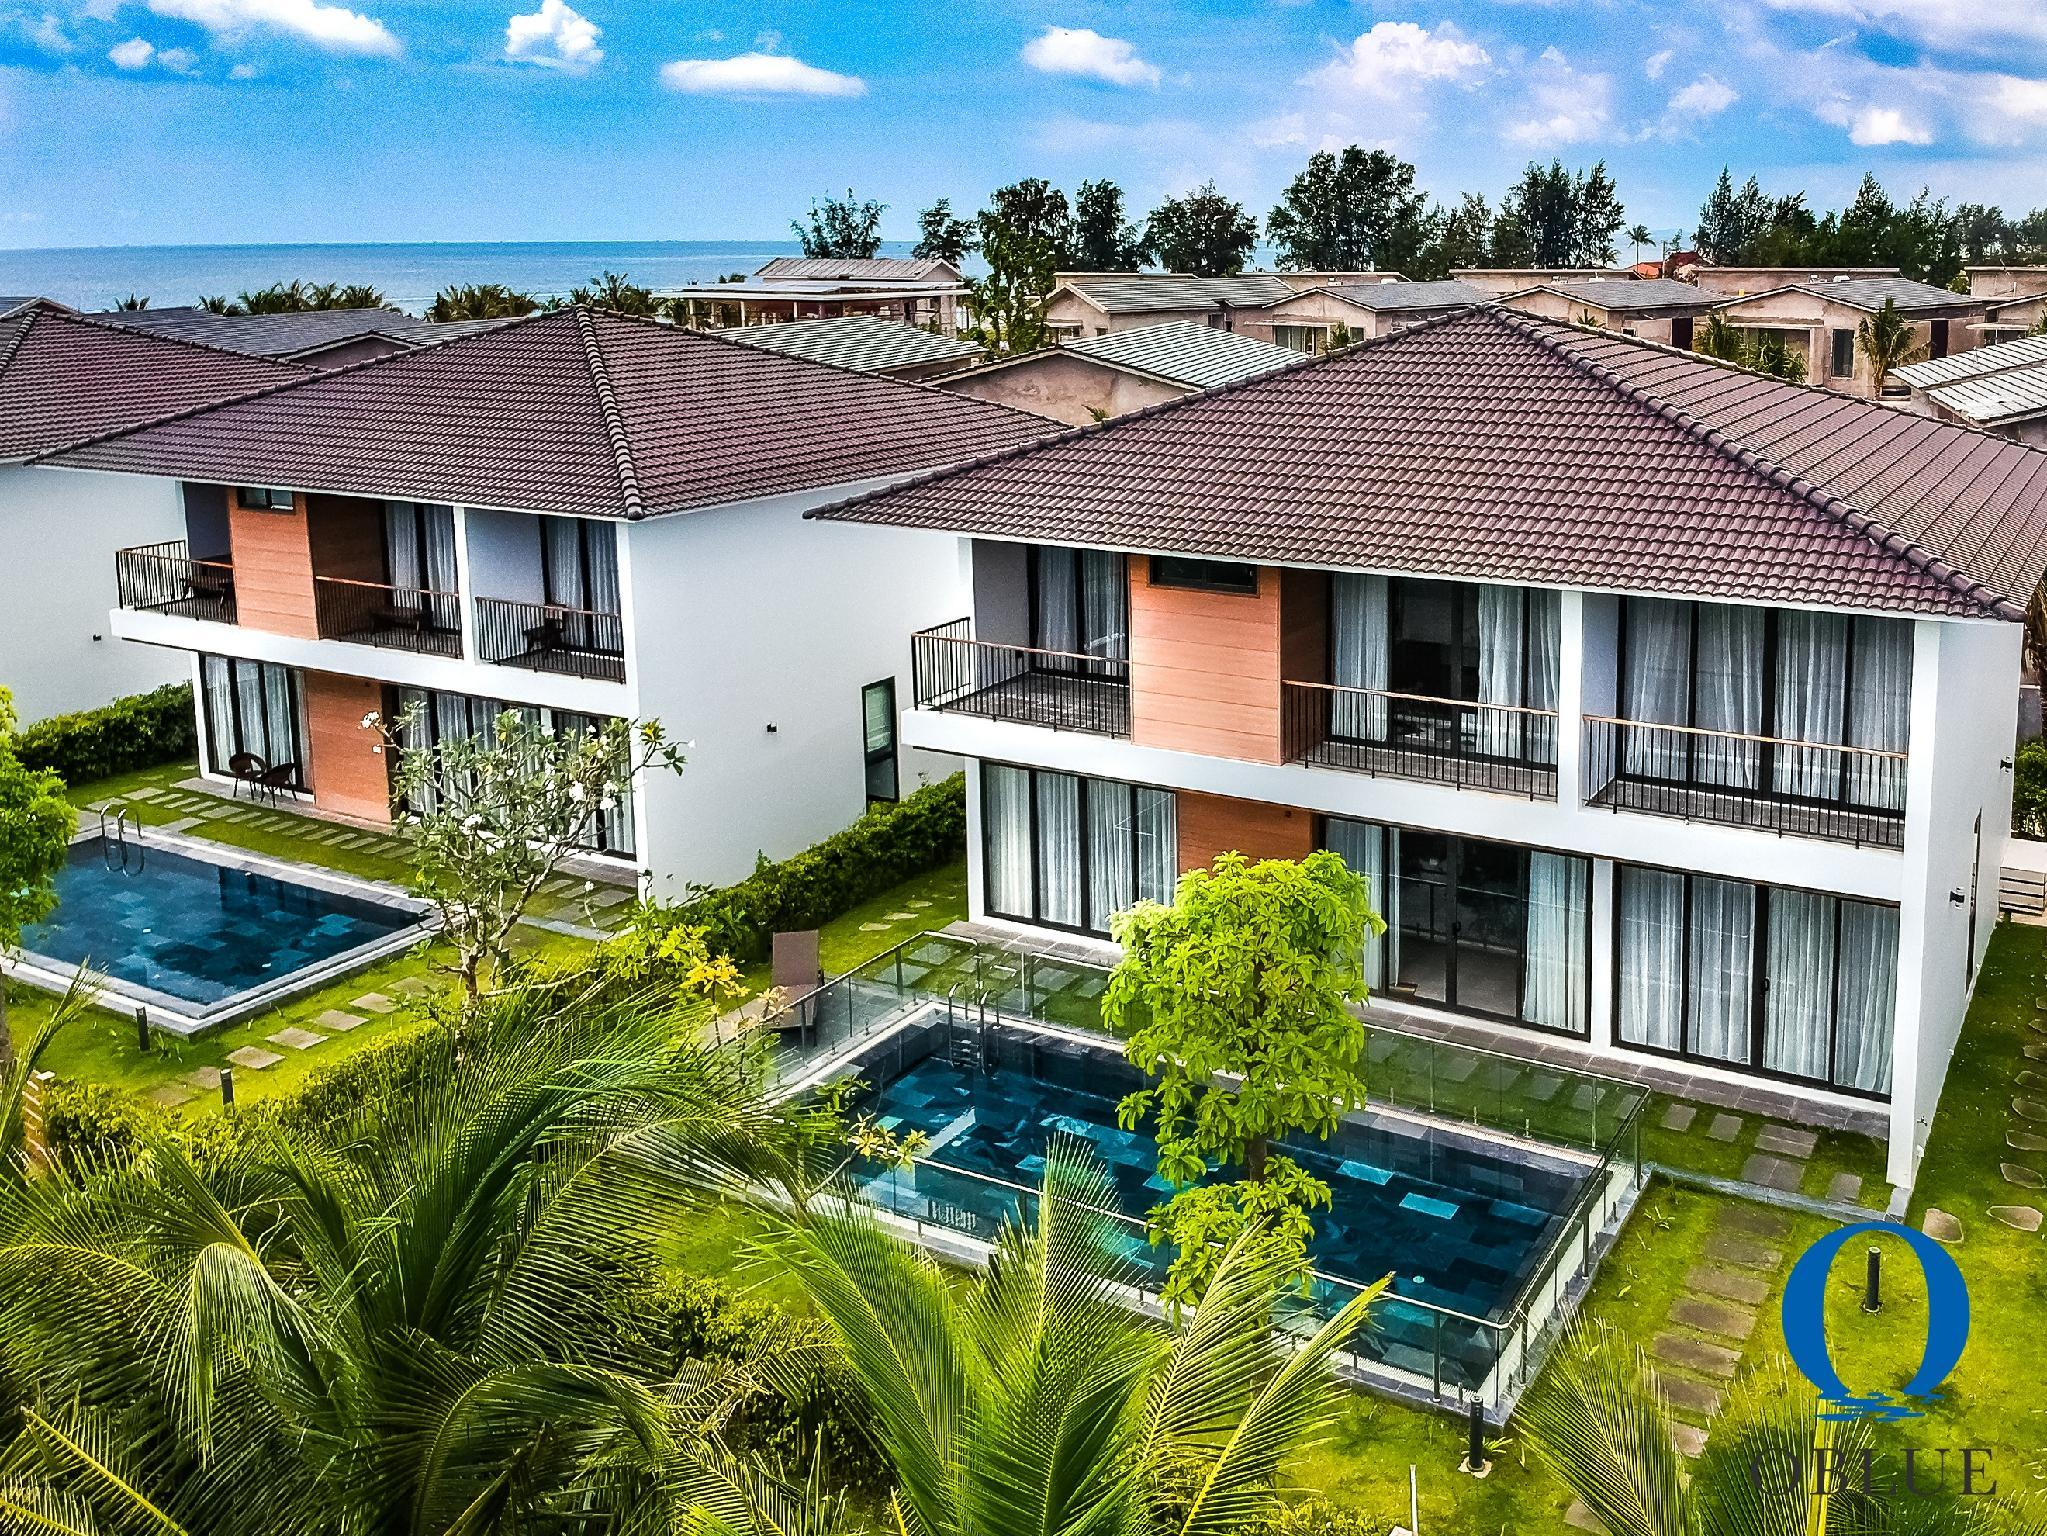 4 Bedroom Villa With Private Pool Near The Beach